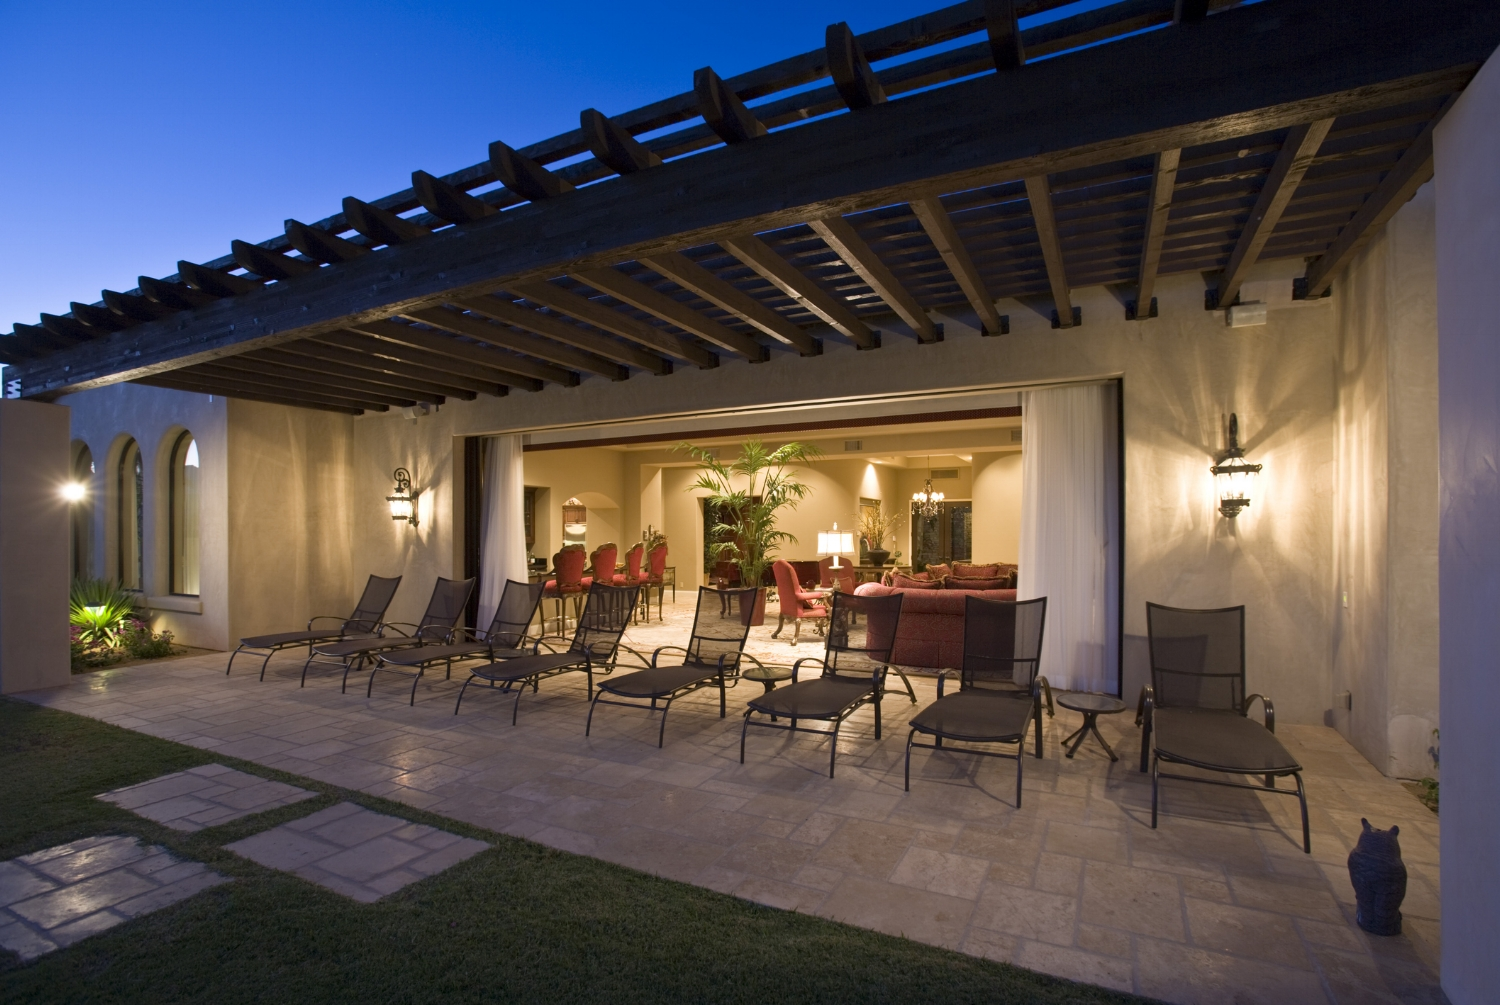 a back patio lit up at night with an open california feel.